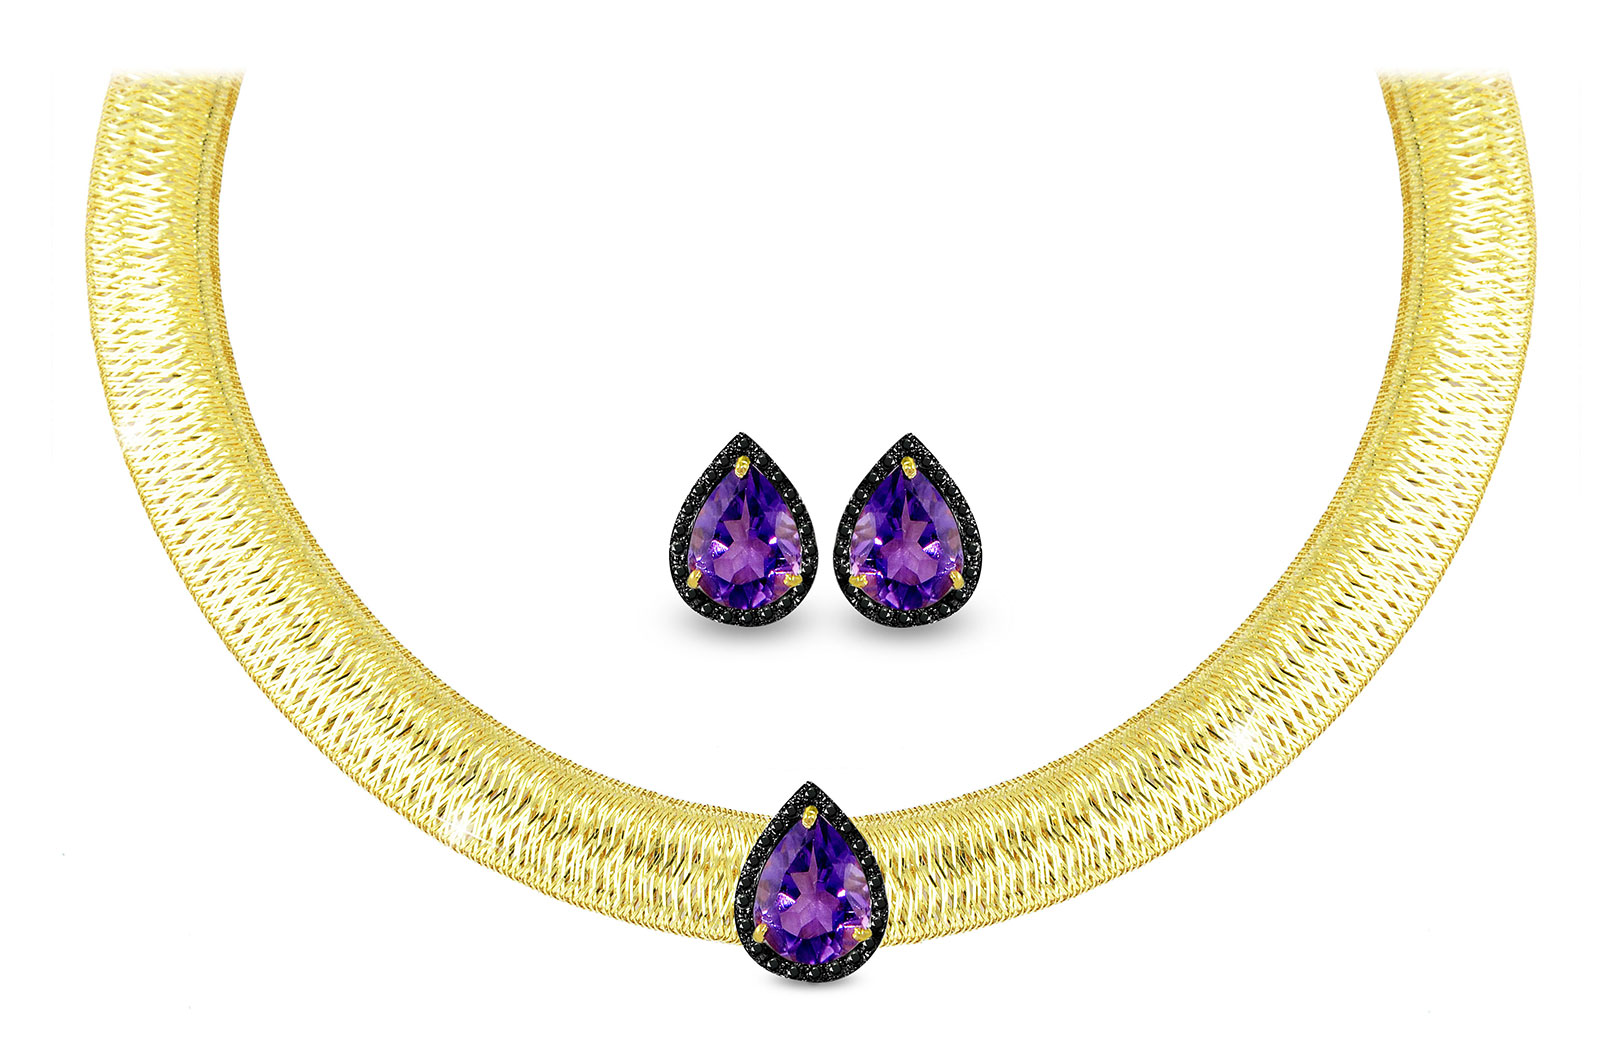 Vera Perla 18K Gold 0.36ct  Black Diamonds, Amethyst Jewelry Set - 2 pcs.